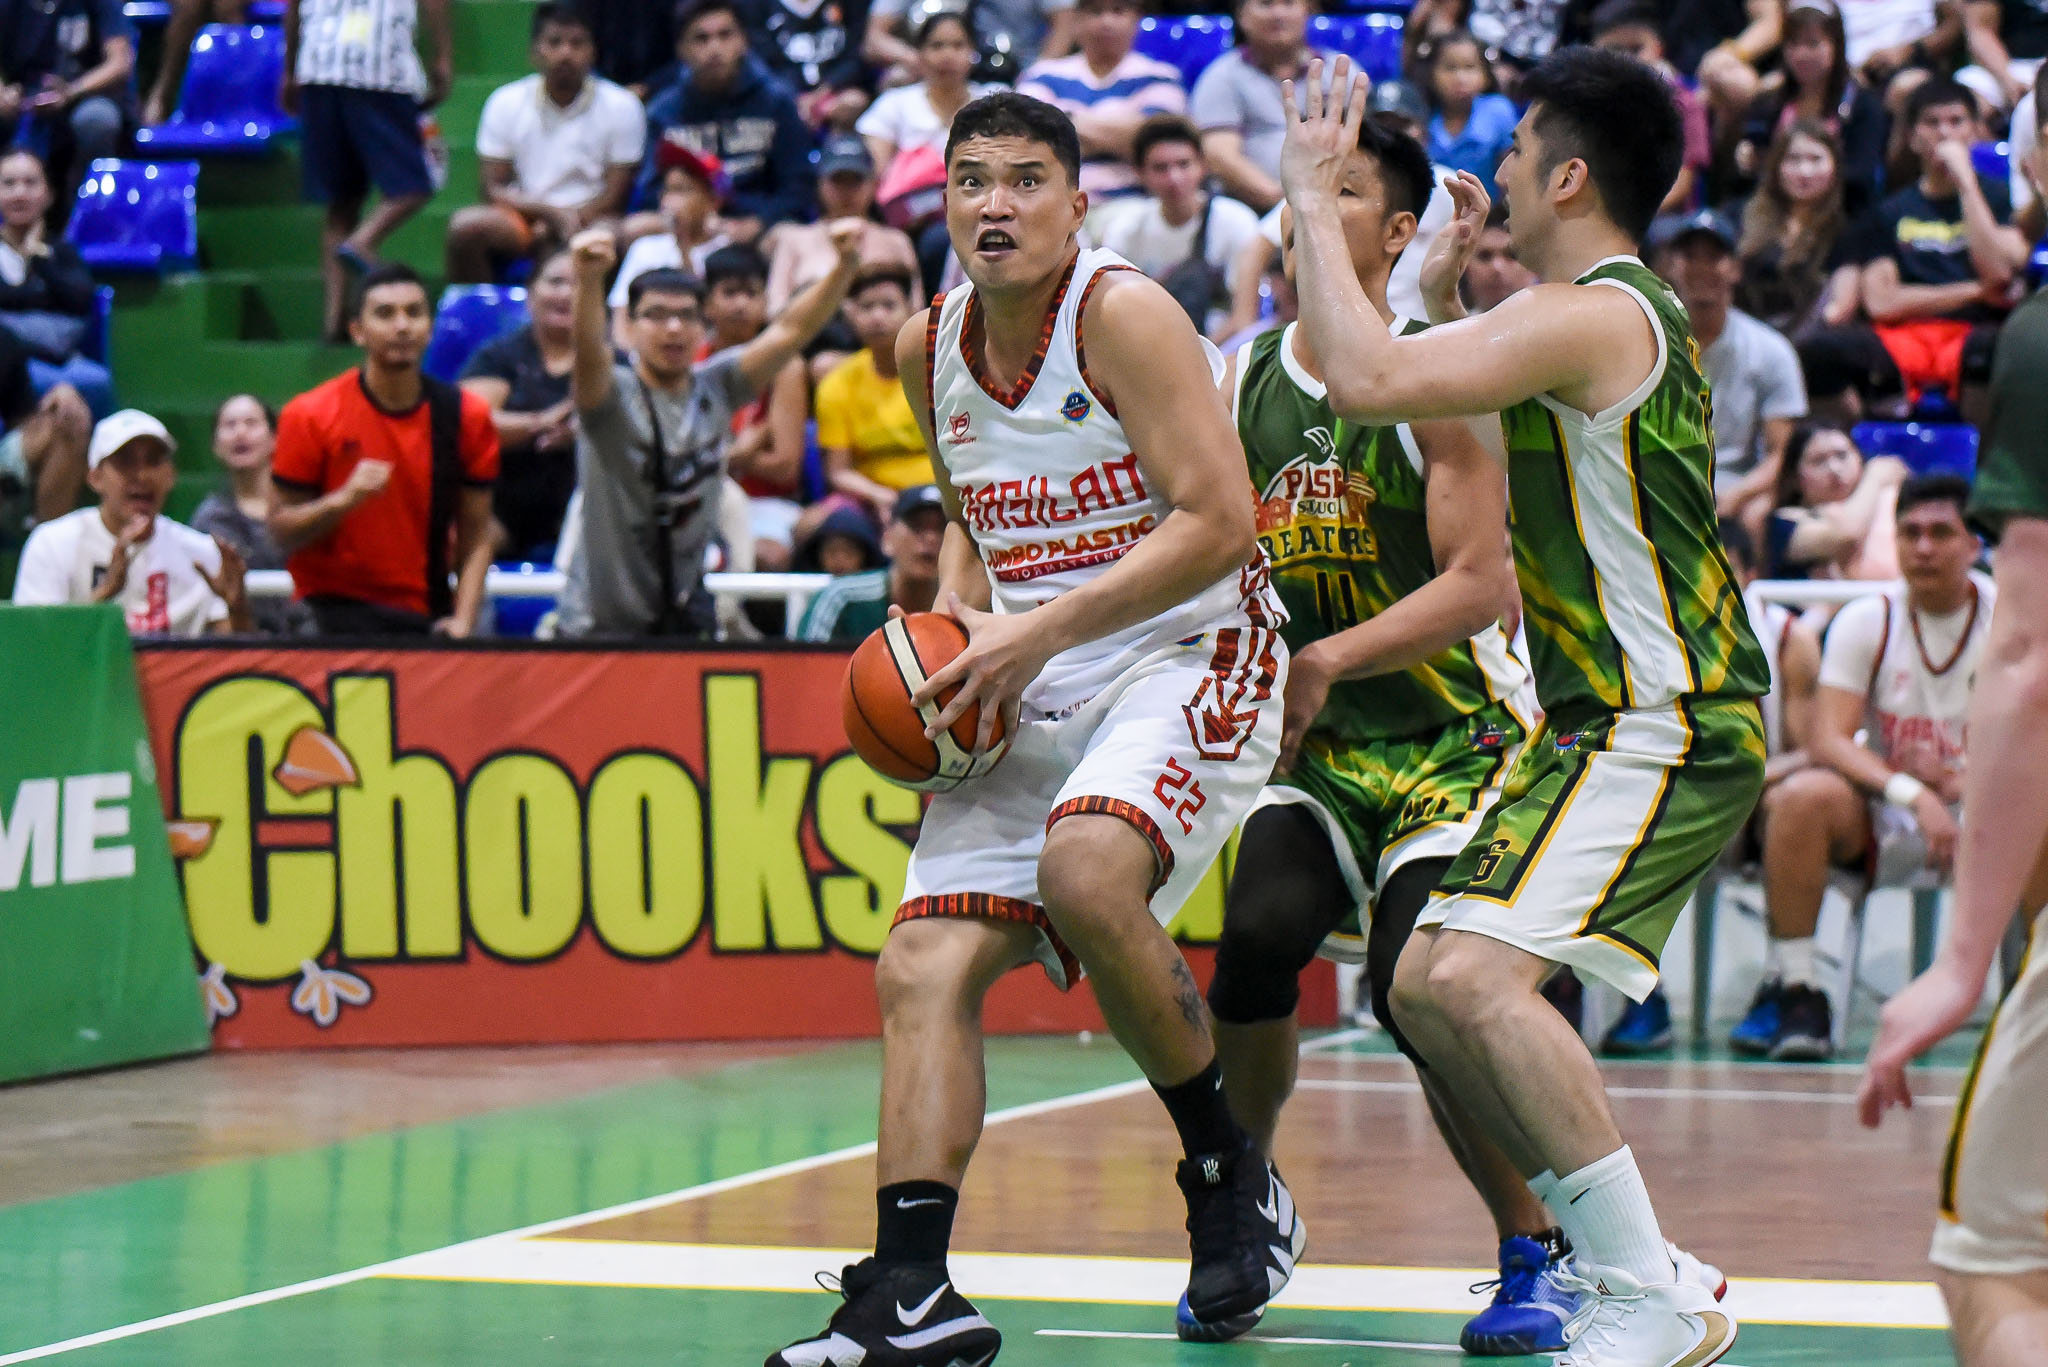 Tiebreaker Times Daa powers Basilan to OT win over Pasig, gains solo fourth in MPBL South Basketball MPBL News  Pasig-Sta. Lucia Realtors Leo Najorda Leo Gabo Jonathan Uyloan Jhaps Bautista Jerson Cabiltes Jeric Teng Gab Dagangon Dennis Daa Basilan Steel 2019-20 MPBL Lakan Cup